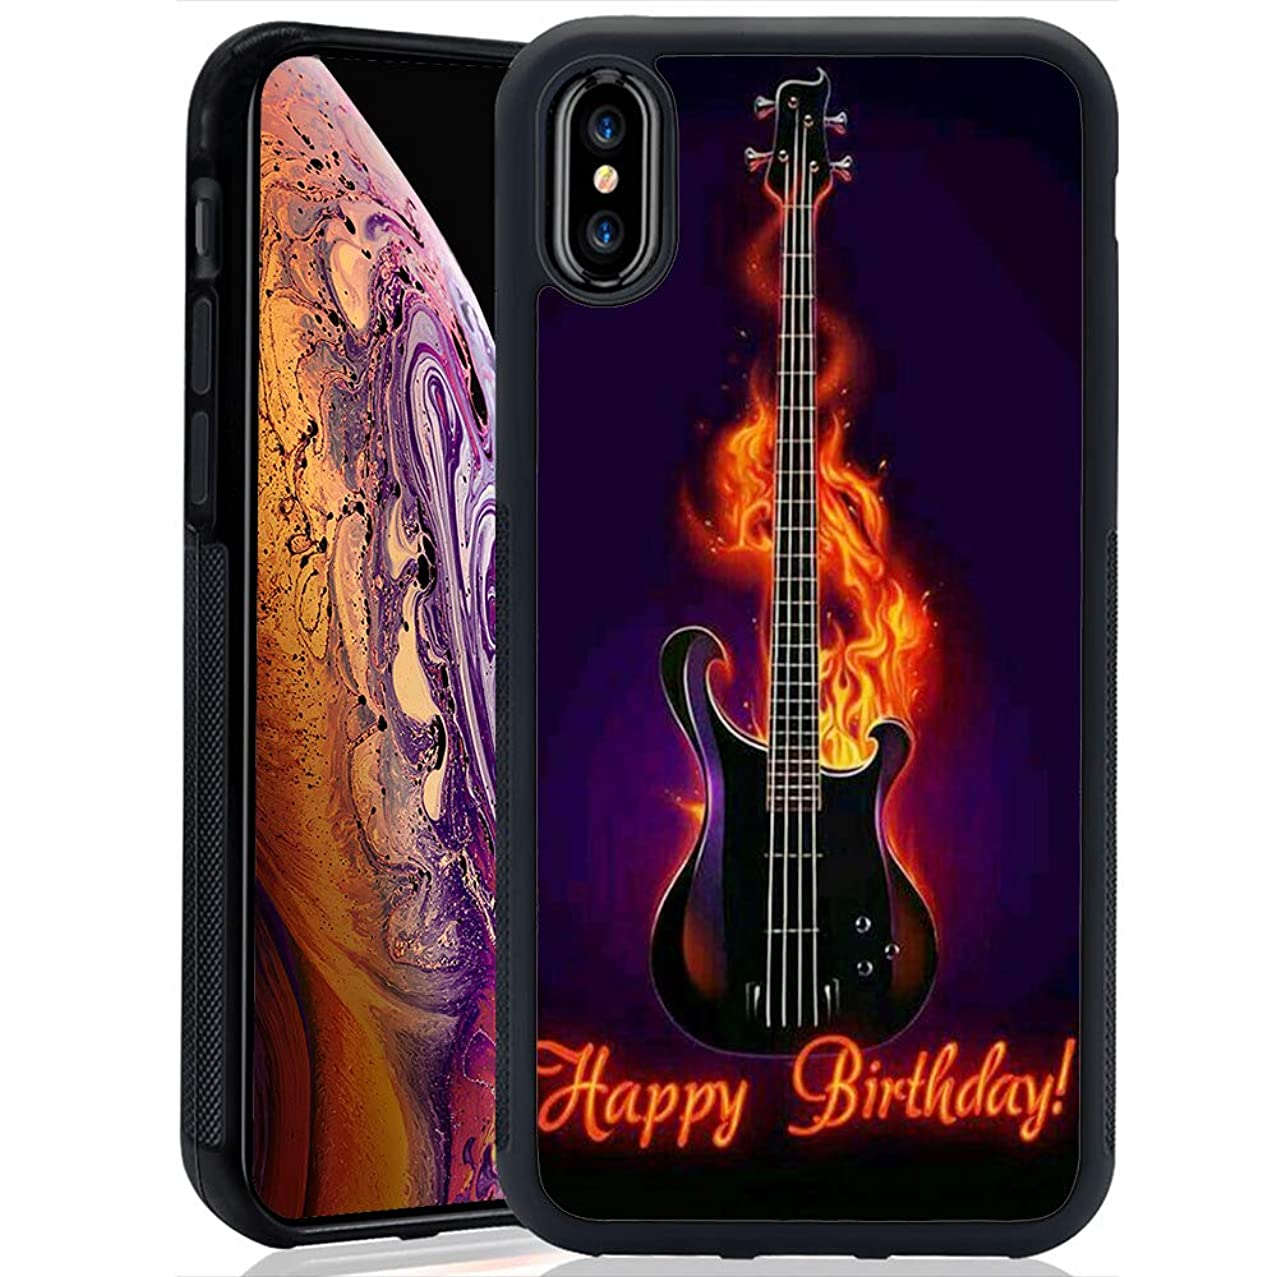 iPhone Xs Max Case Guitar PC and TPU Shockproof Slim Anti-Scratch Protective Dual Layer Rugged Case Non-Slip Grip Case for iPhone Xs Max